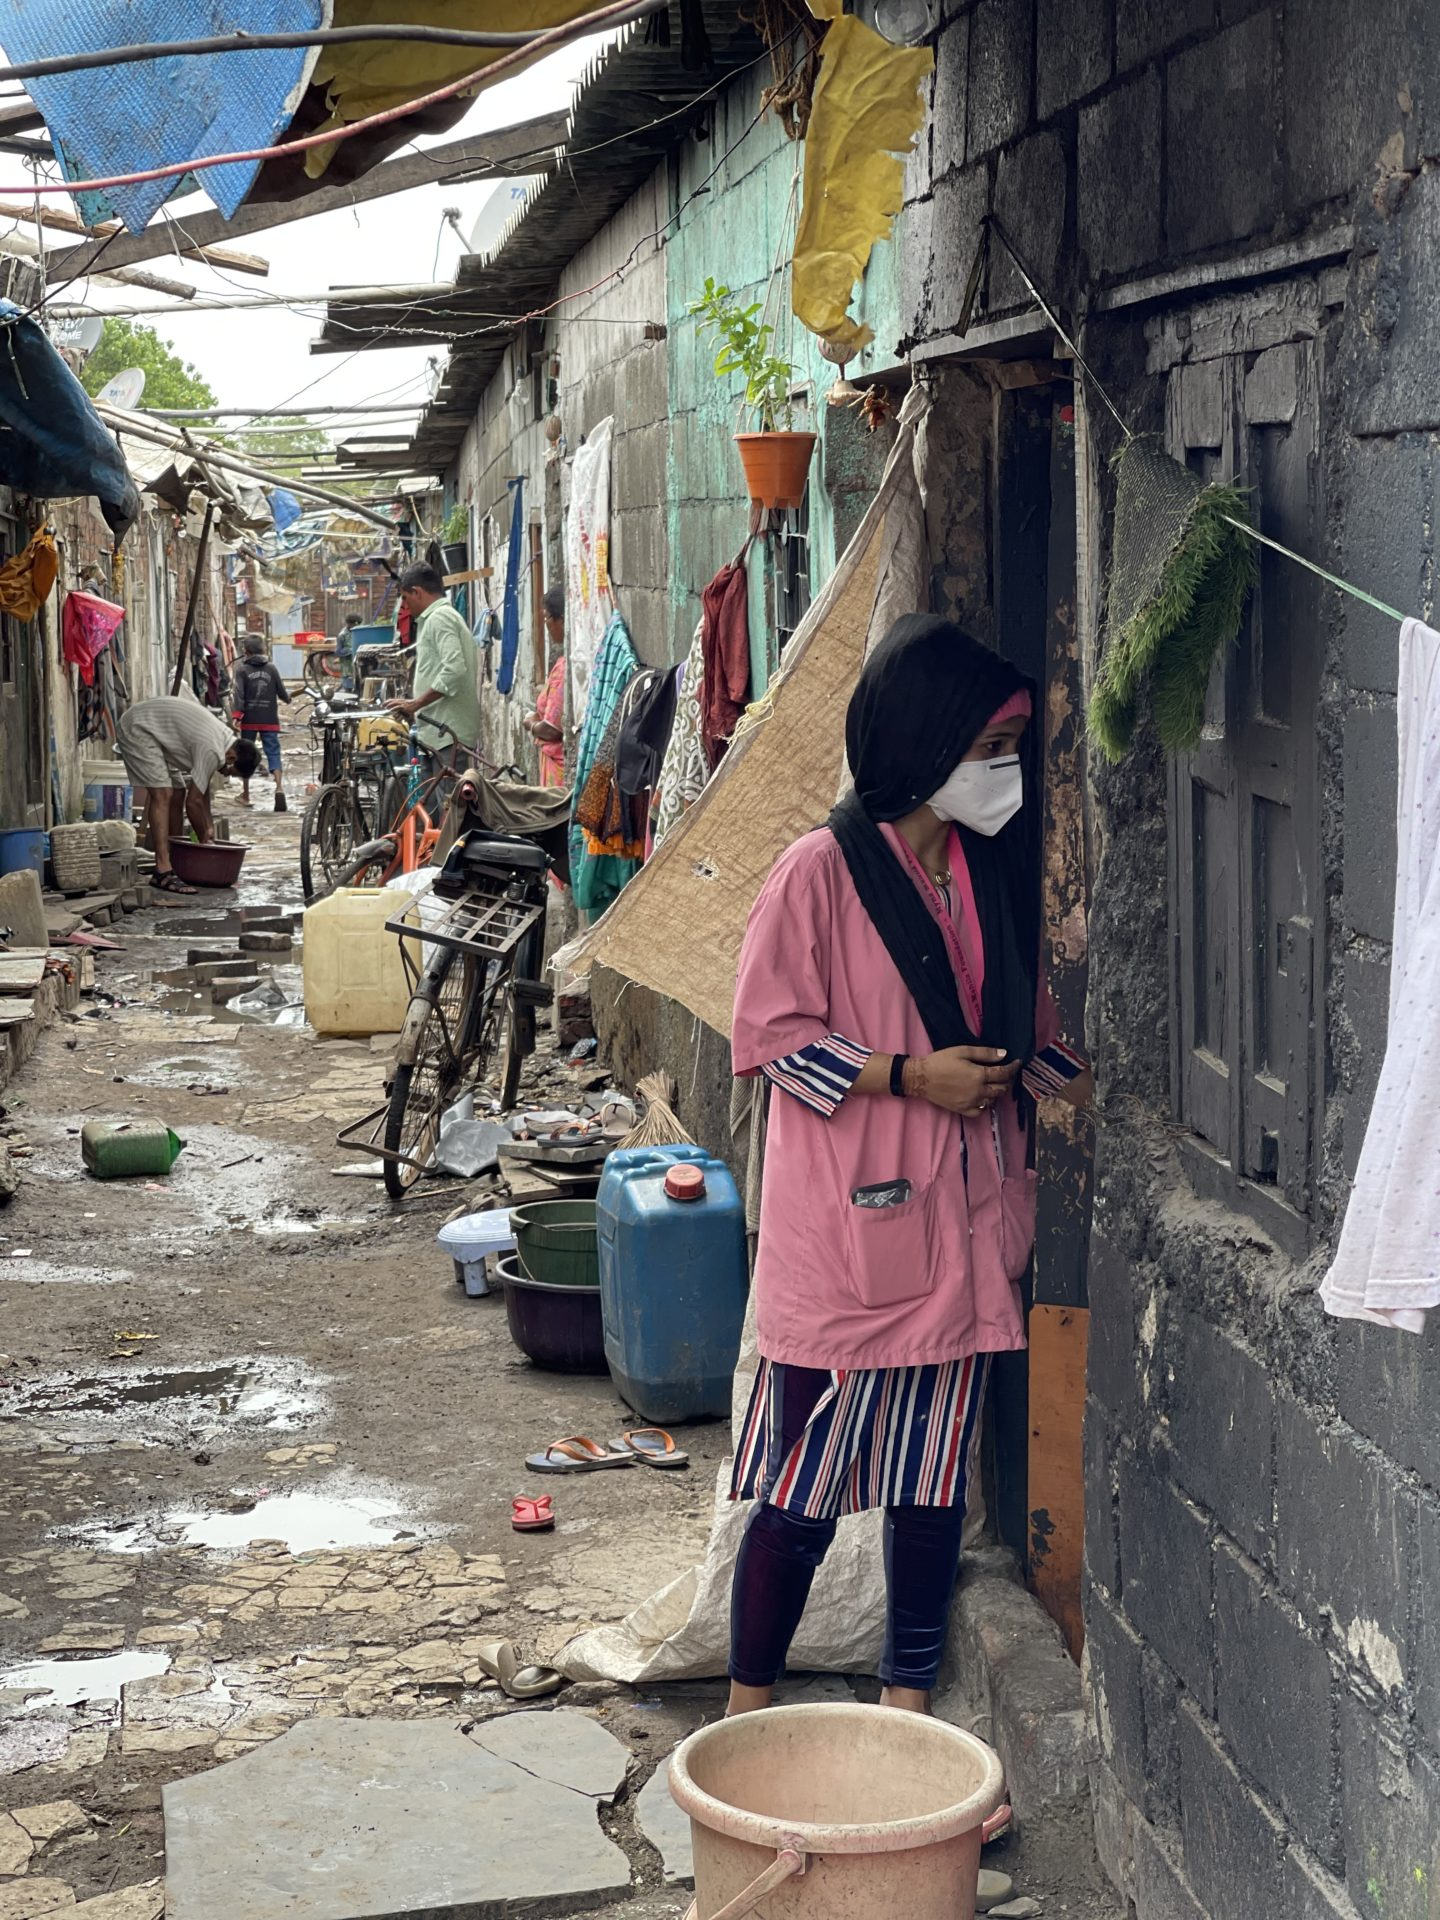 In this photo, Mariam from Myna Mahila is wearing a facemask and speaking at the doorstep of someone in a shack in a slum. The houses all have aluminium roofs, lots of sticks, and water containers on the floor to store water. She is in a narrow alleyway with slums on both sides.